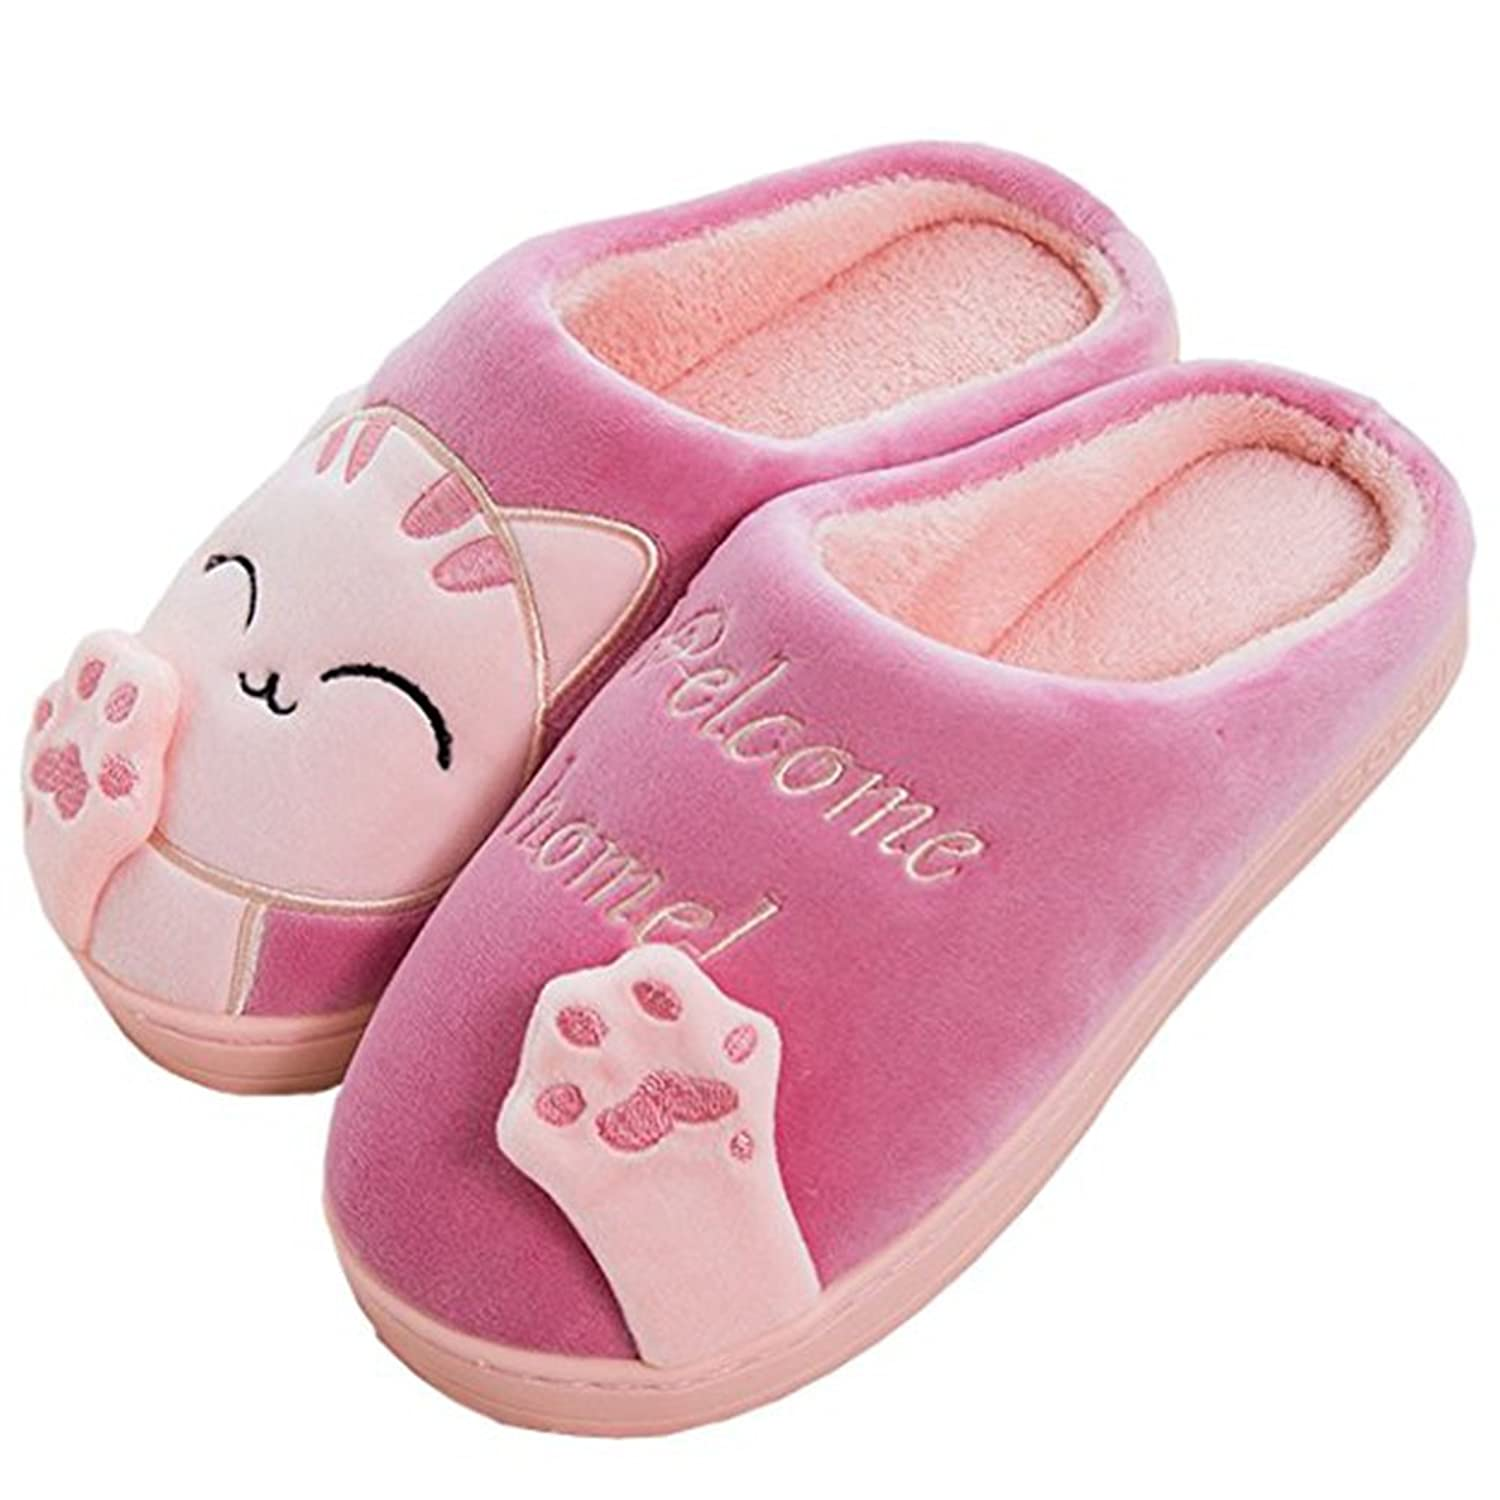 33495a85484b SITAILE Women Men Plush Cute House Slippers Lucky Cat Warm Winter Indoor  Home Slippers